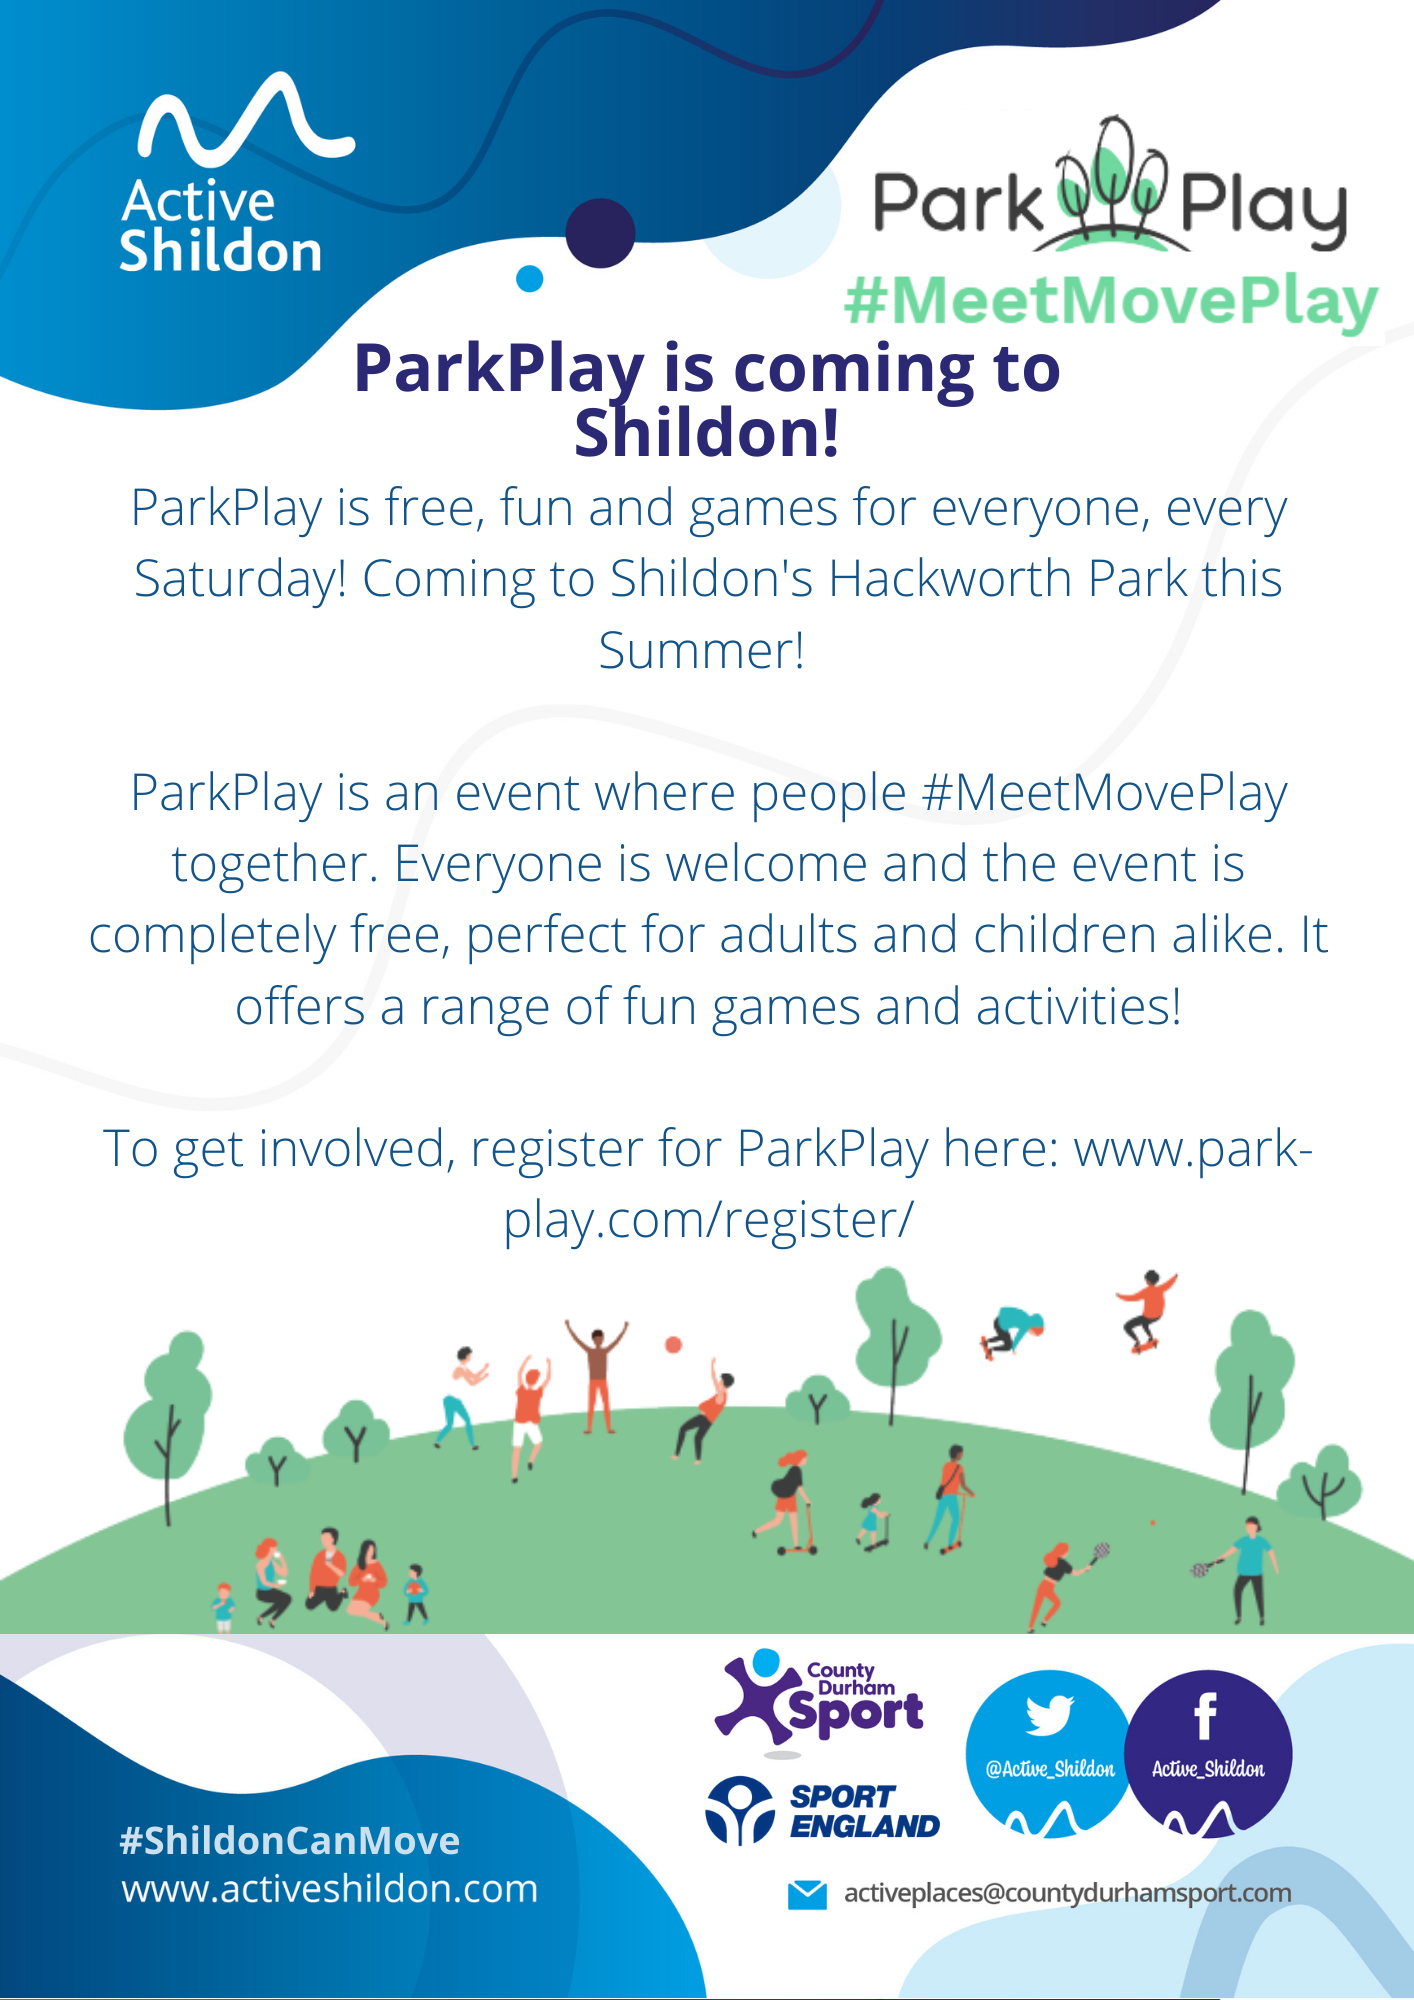 Promotional Poster for Parkplay starting on 10th July in hackworth Park 10.00am - 11.00am